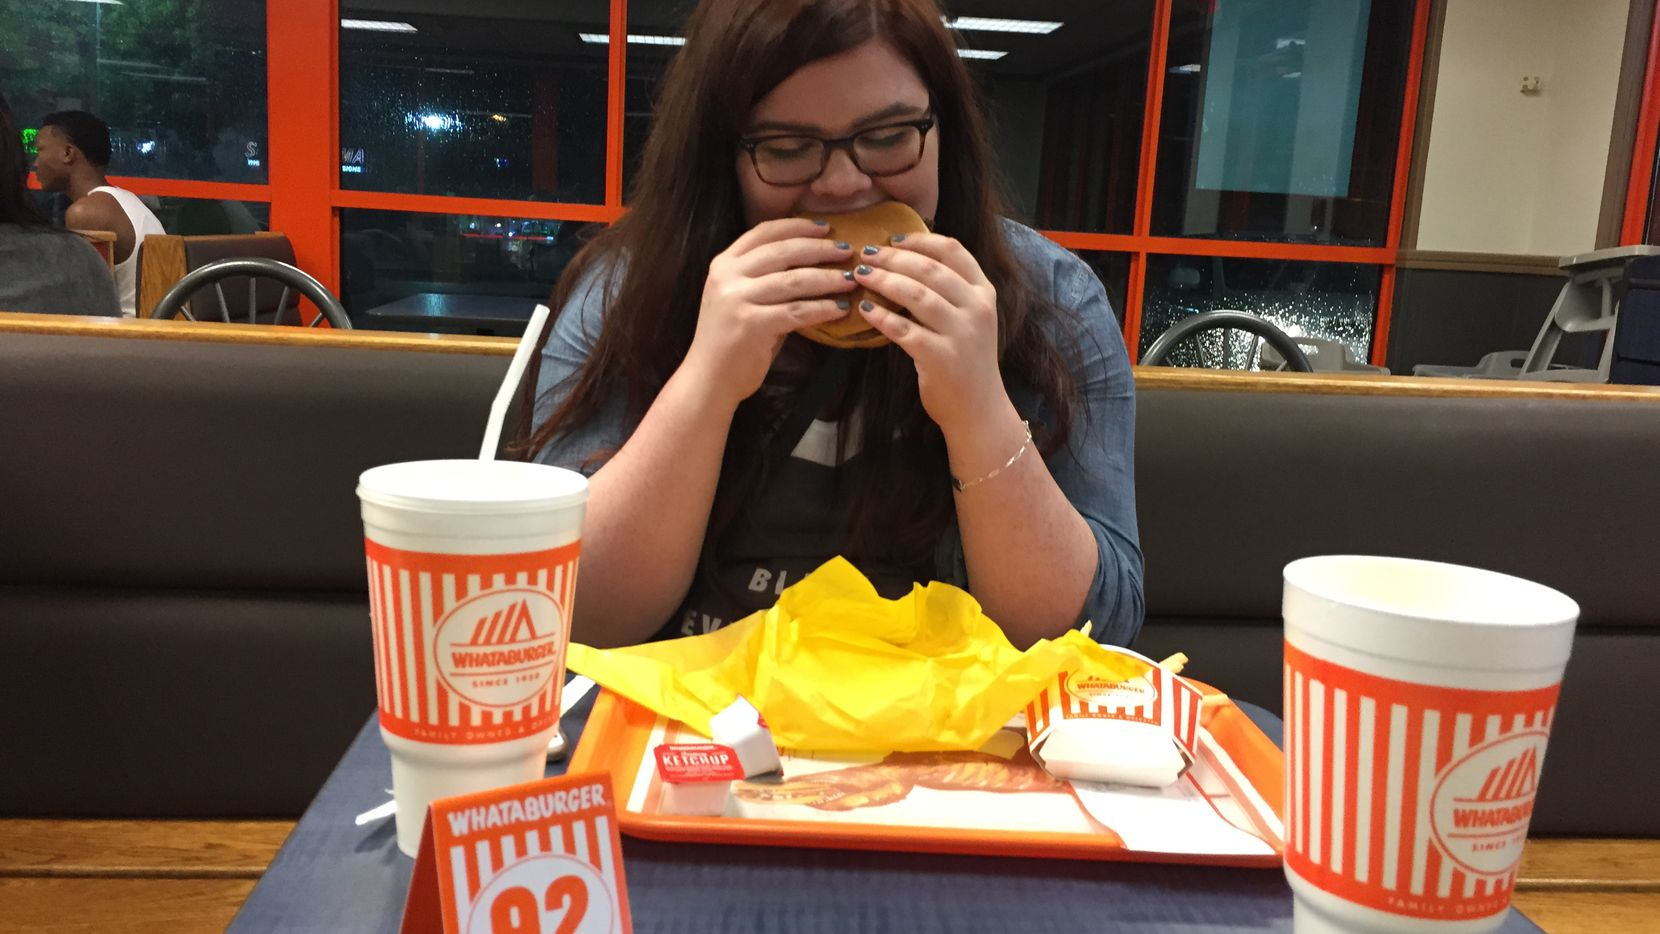 My first bite of Whataburger ever. Life changing? Not so sure about that, but it did the job of providing me peace at 3 a.m.